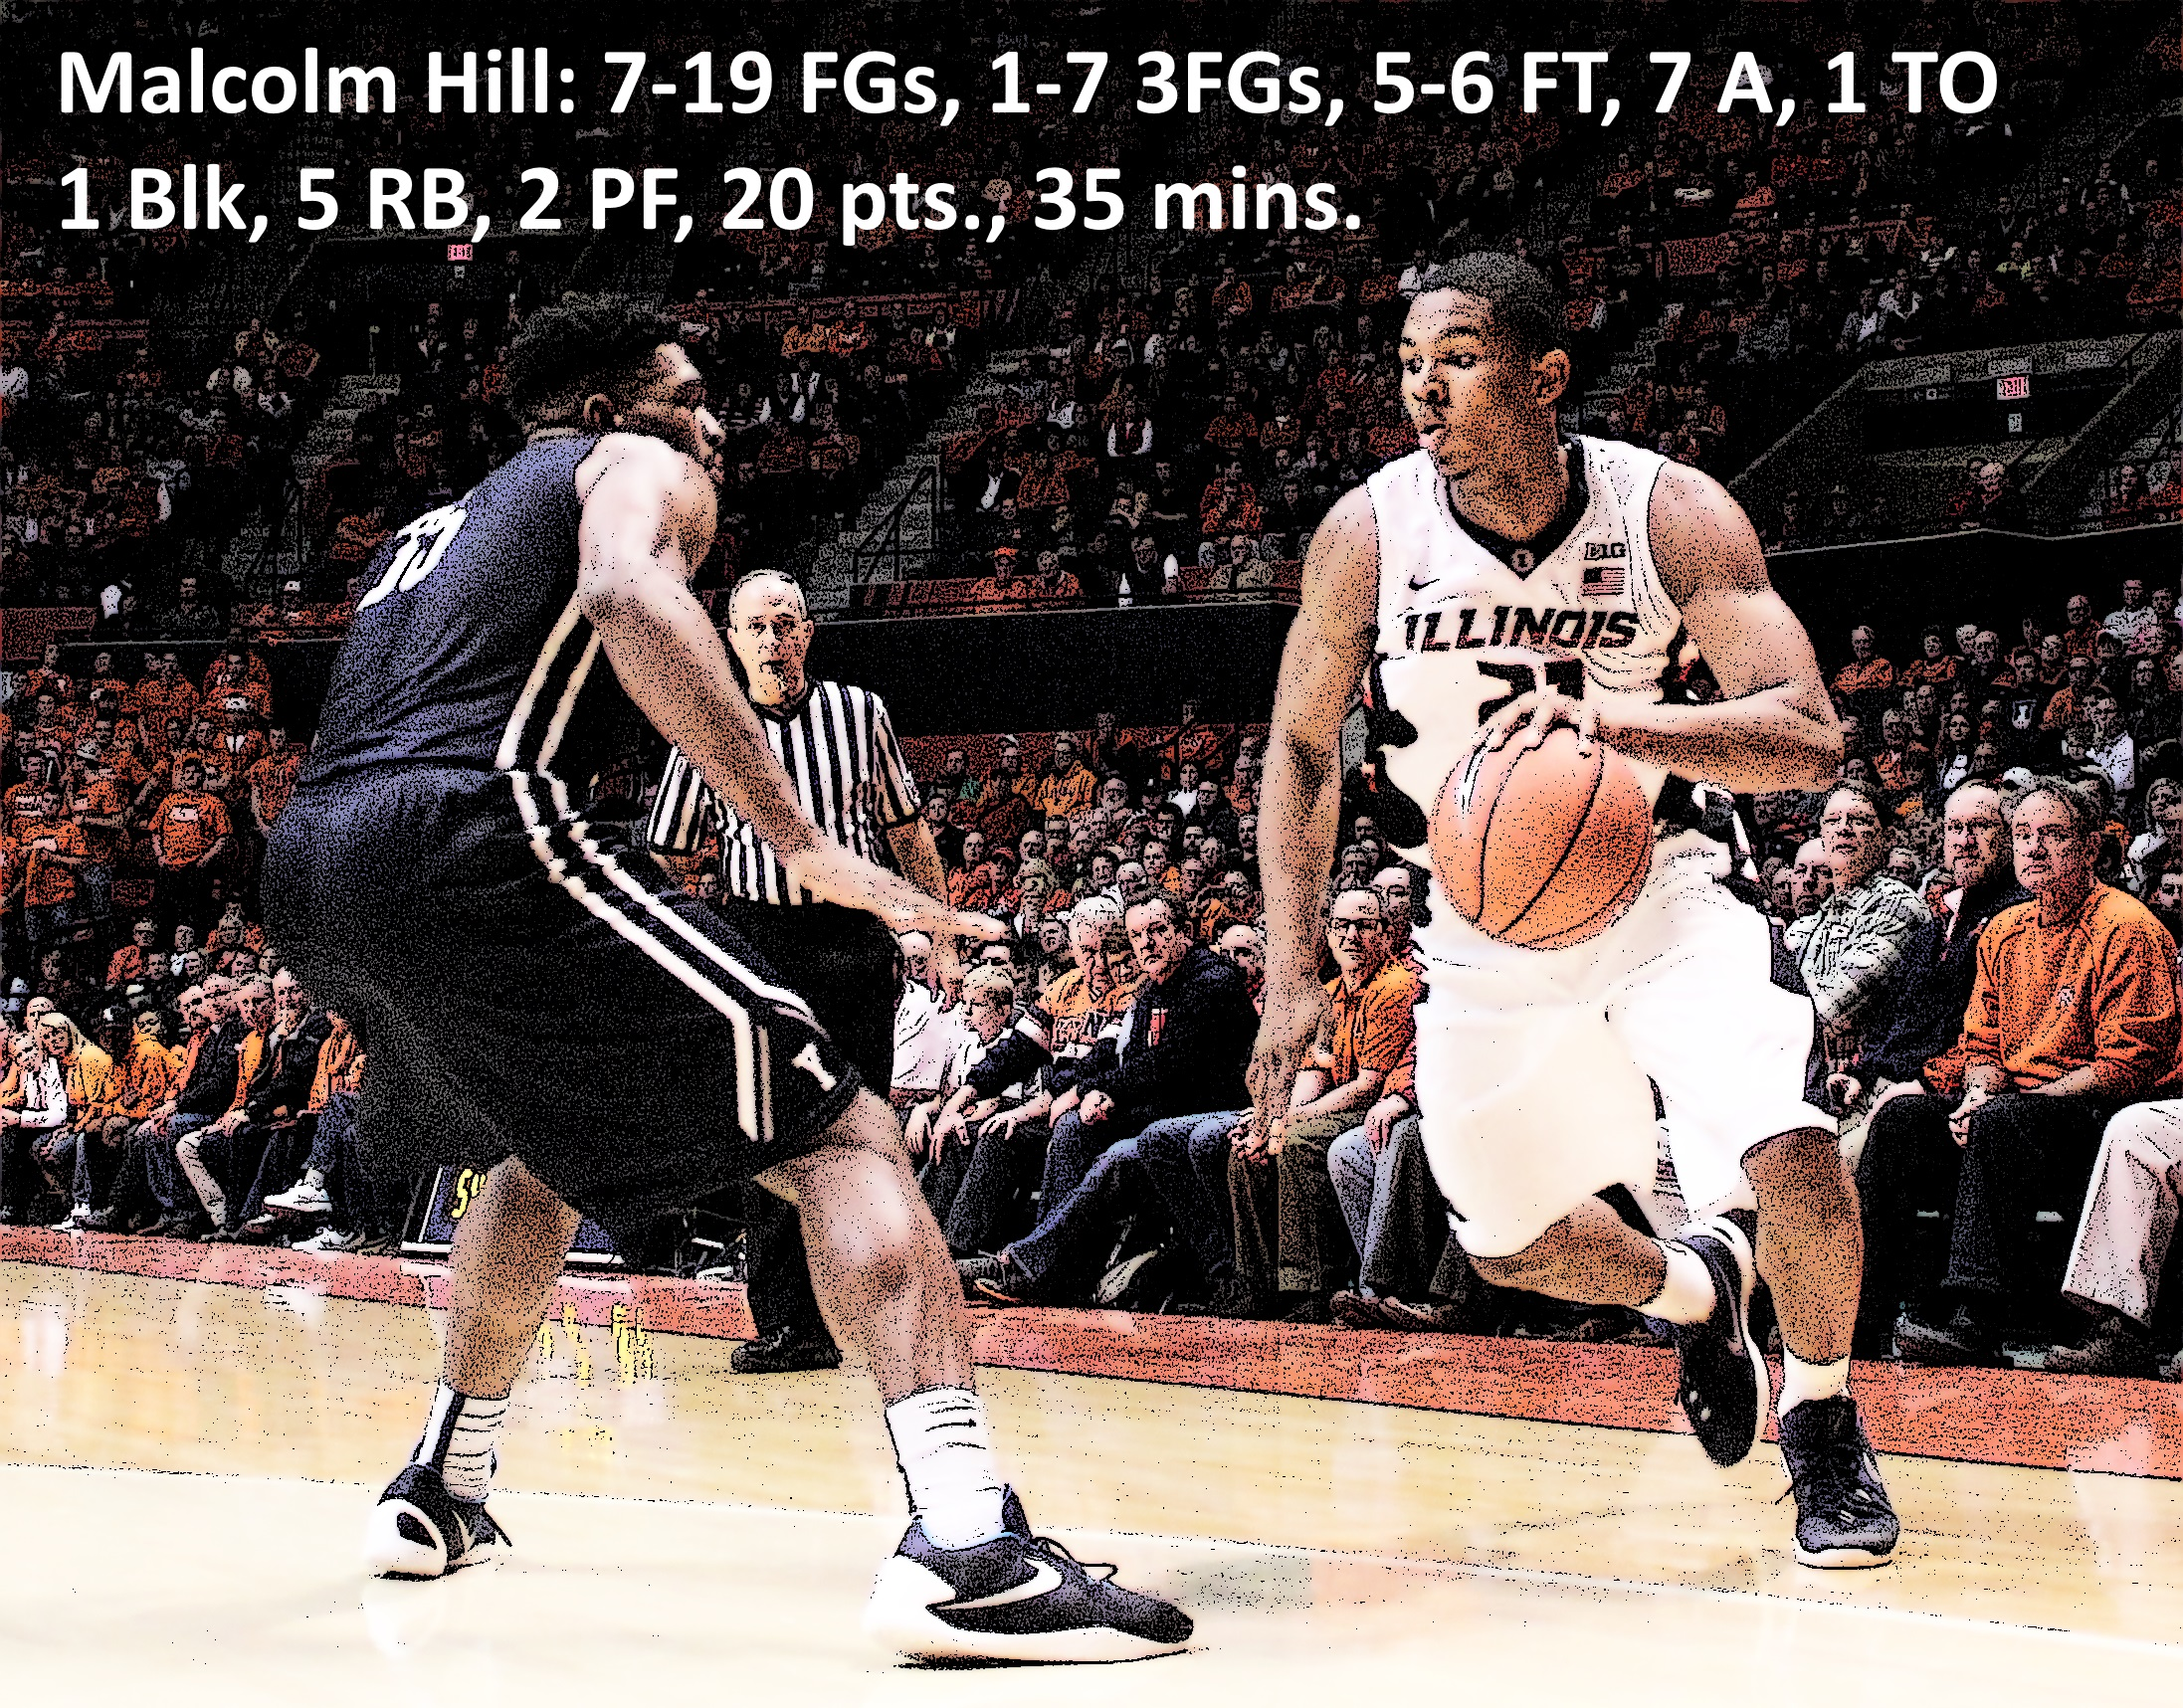 Malcolm Hill stat line Yale